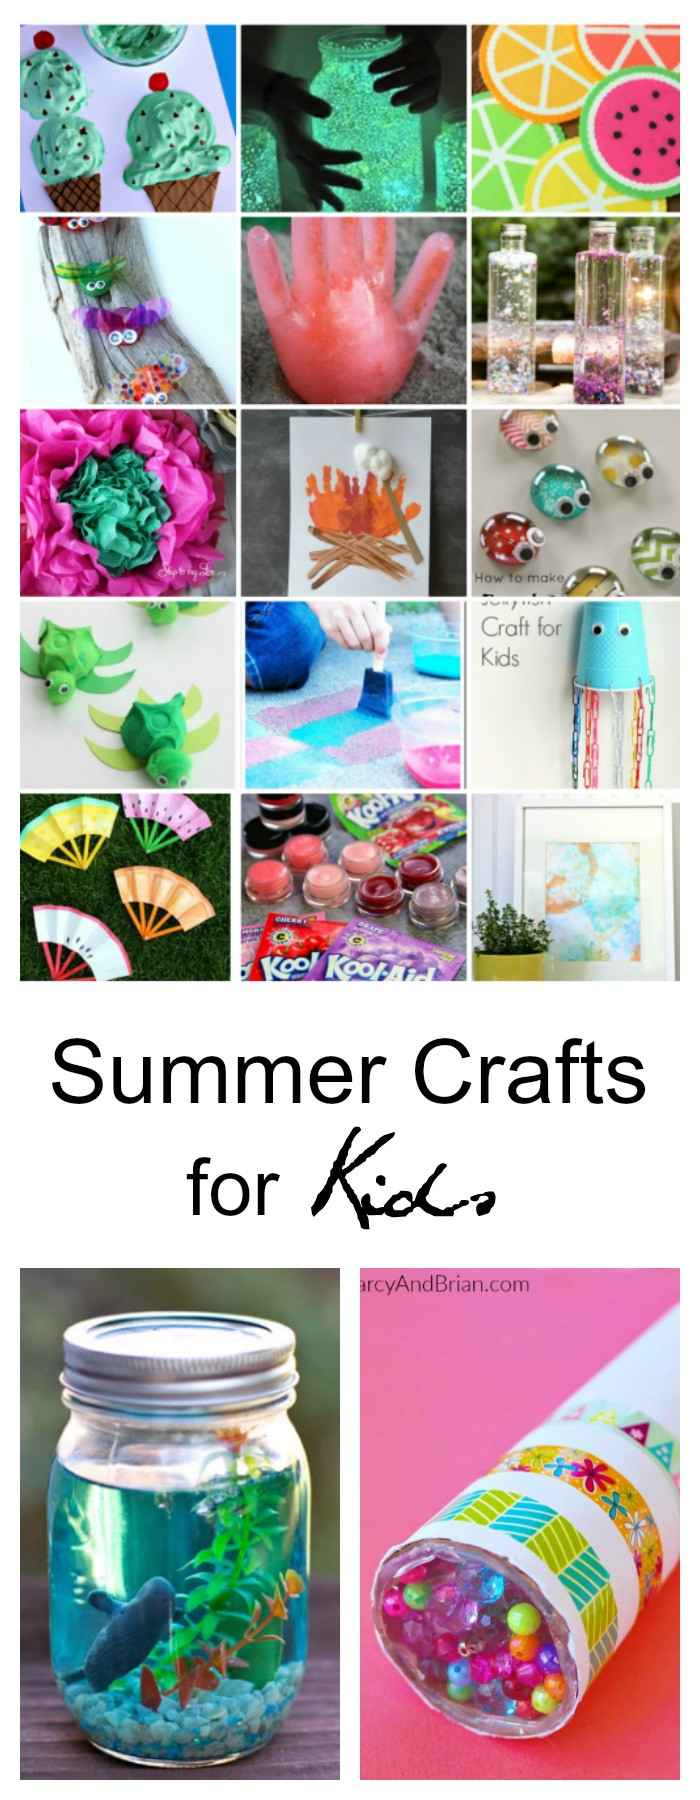 Best ideas about Kids Craft Ideas . Save or Pin 40 Creative Summer Crafts for Kids That Are Really Fun Now.